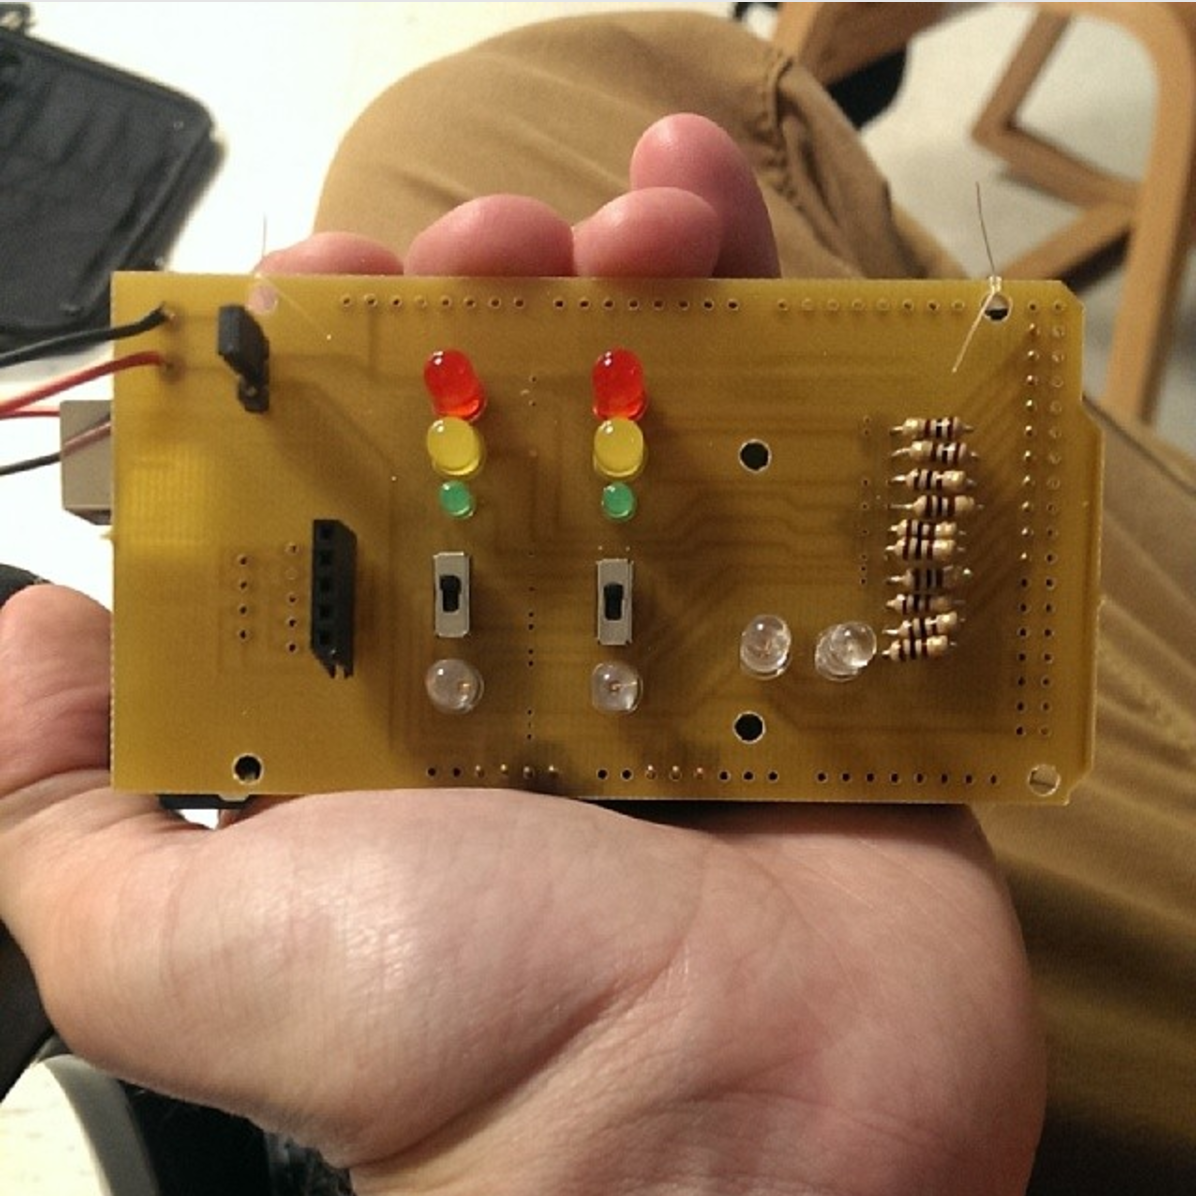 The custom controller built for this application on an Arduino platform. The lights indicate the state of each pair of traffic lights in each direction, and the switches control the time-priority of traffic going each direction respectively.